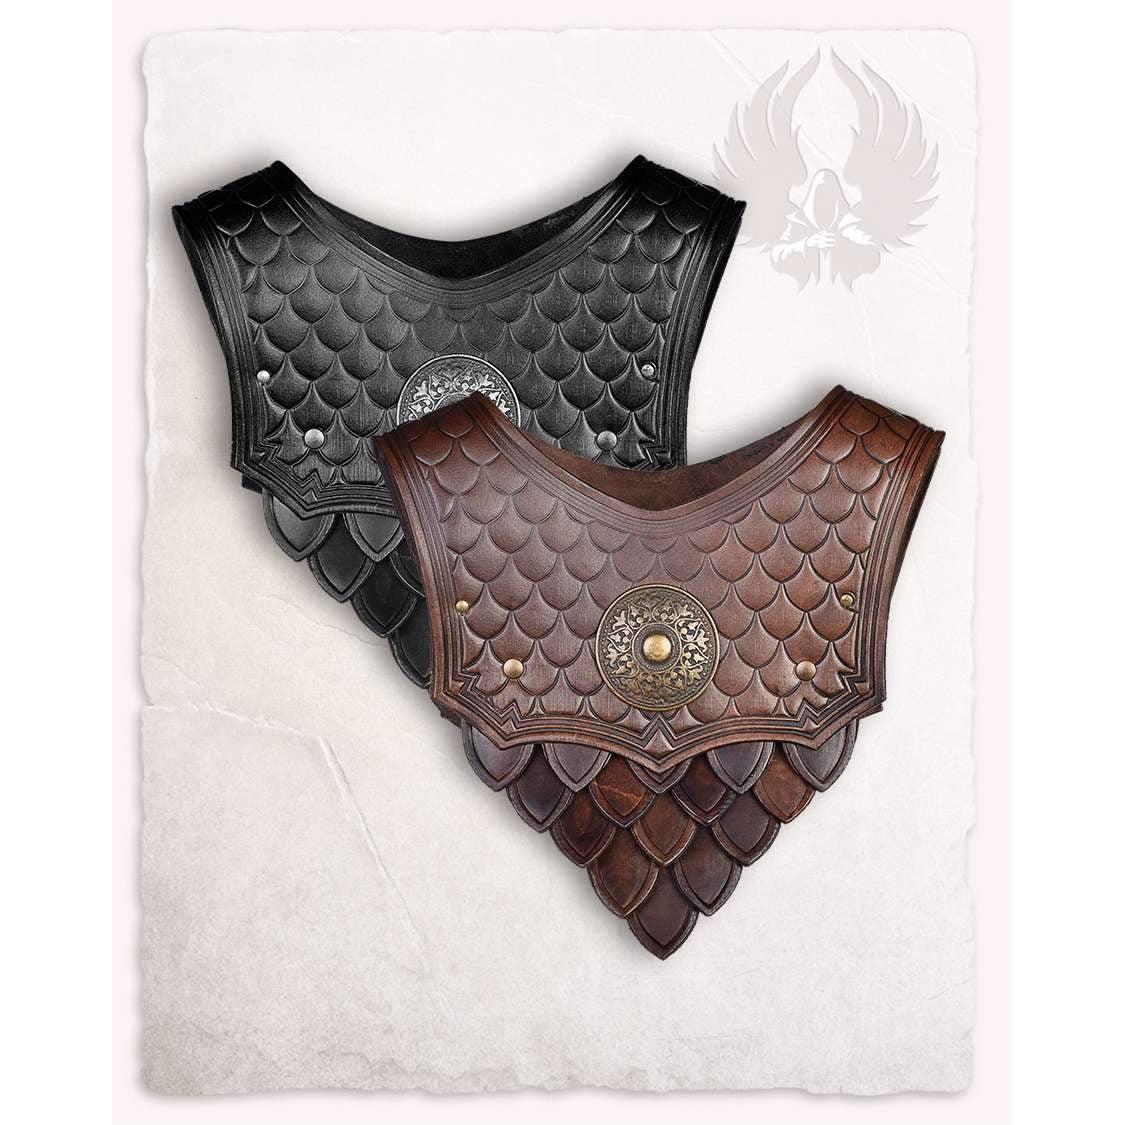 Hektor leather gorget